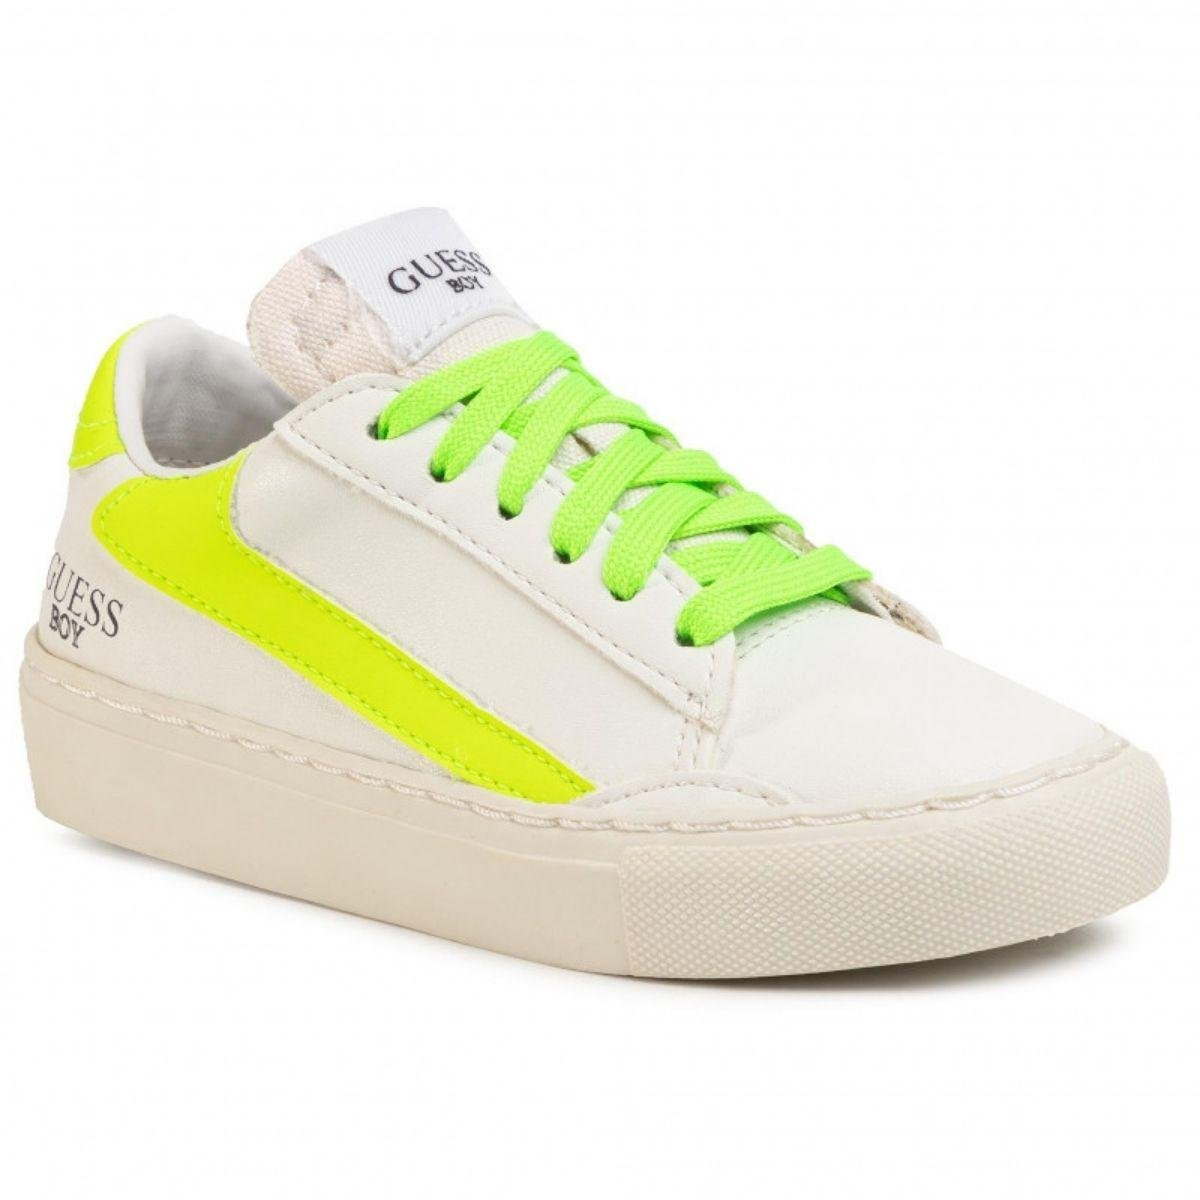 Scarpa Guess Luiss Ecopelle...